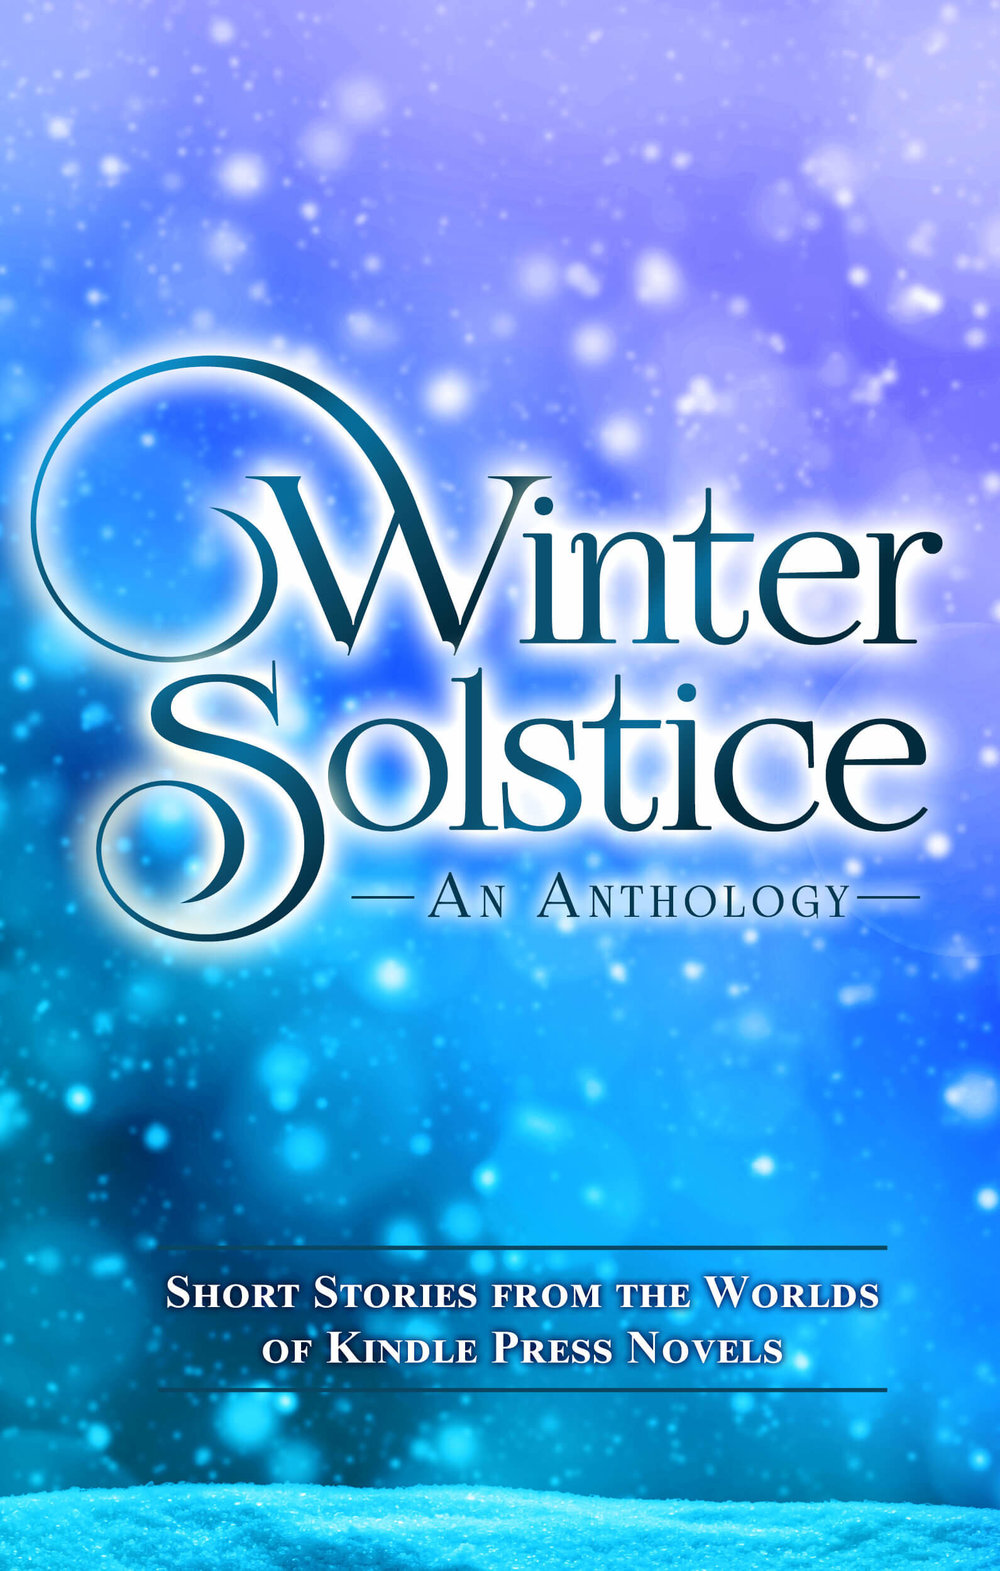 Winter Solstice - Looking for a good book to curl up with through the cold and lonely winter? Then look no further! This volume contains a dozen winter-themed stories by Kindle Press Authors writing in the worlds of their longer works. There is romance, action and adventure, intrigue, and even a few scary stories to get you through the long and cold nights.So grab a copy and come along! Who knows, you might just find your next favorite author!